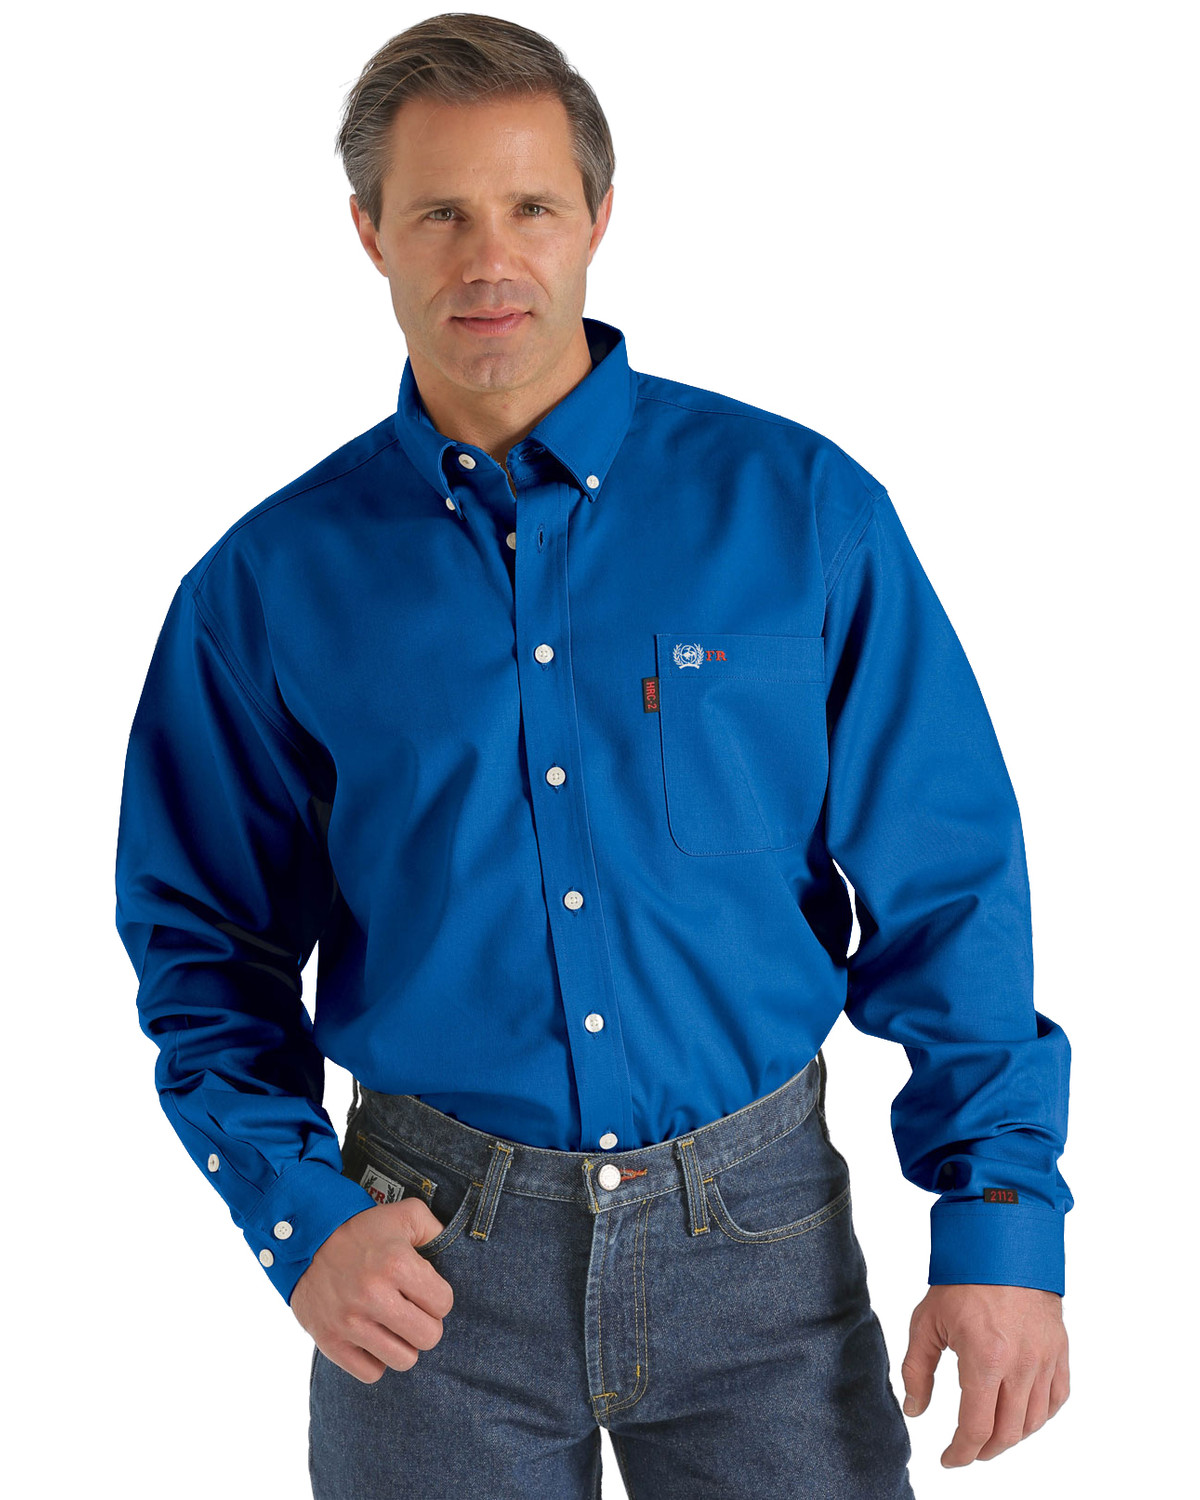 Cinch wrx flame resistant solid royal blue shirt sheplers for Cinch flame resistant shirts